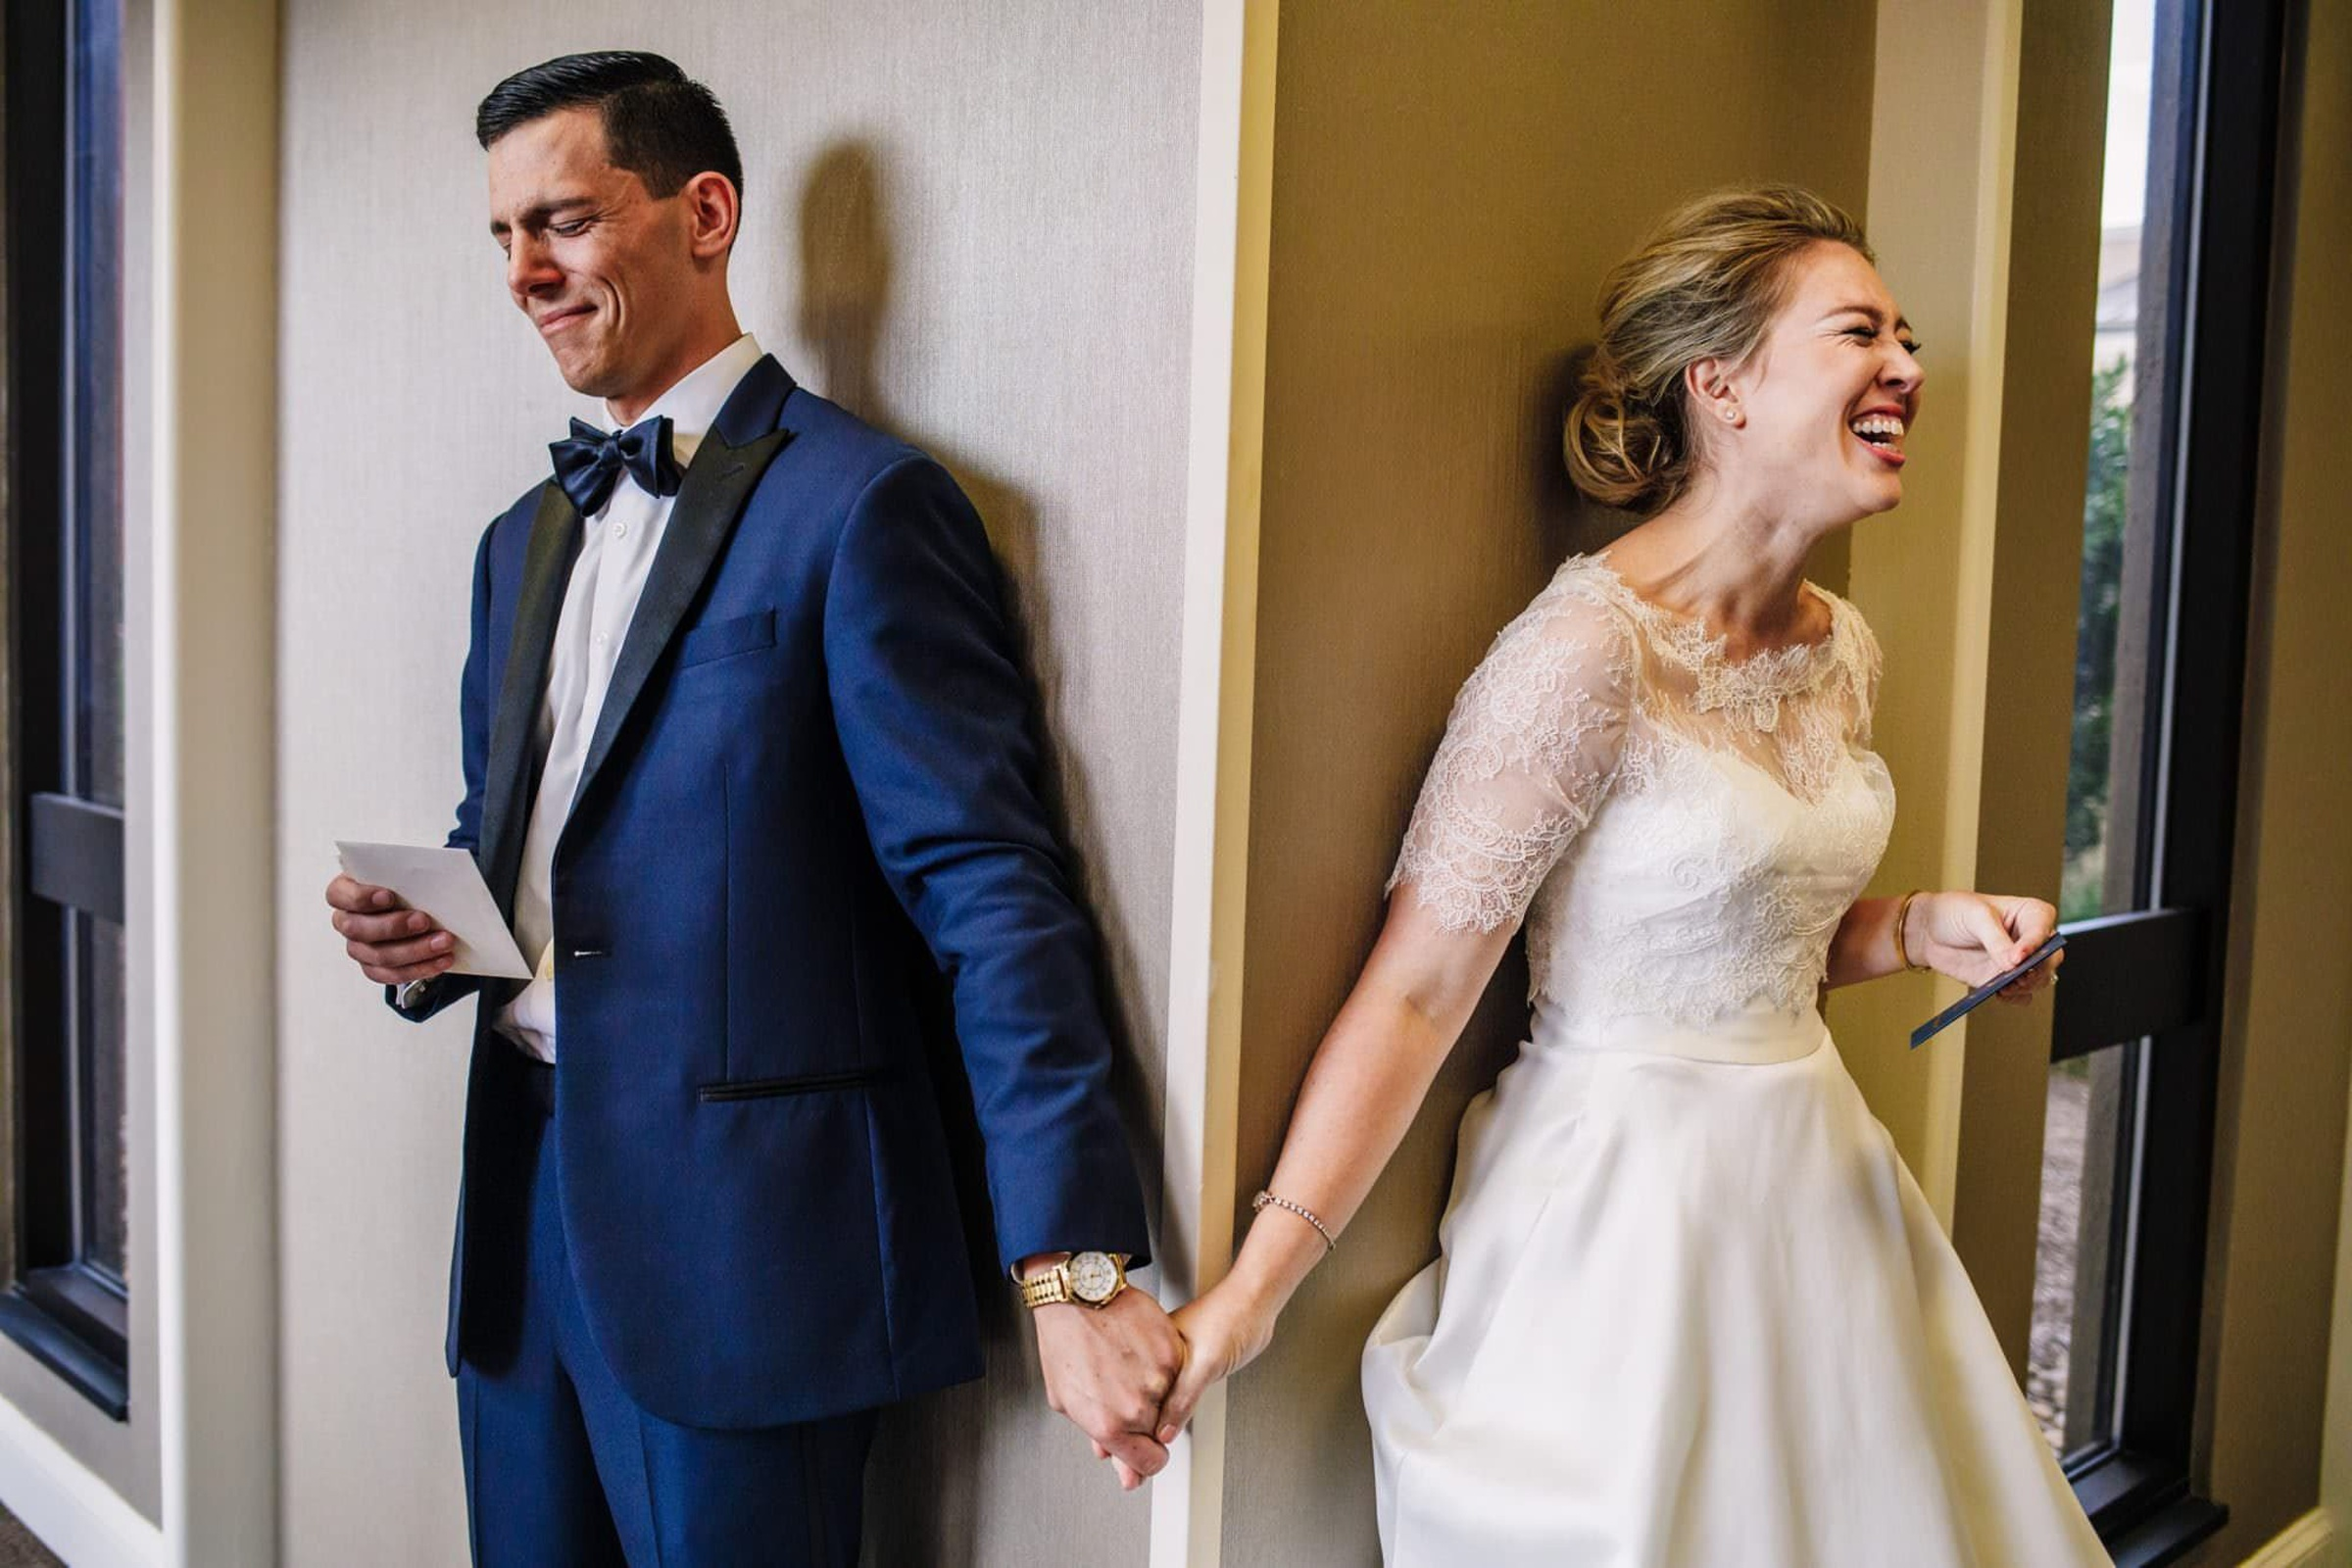 Bride and groom holding hands during blind first look - photo by Photography by Brea